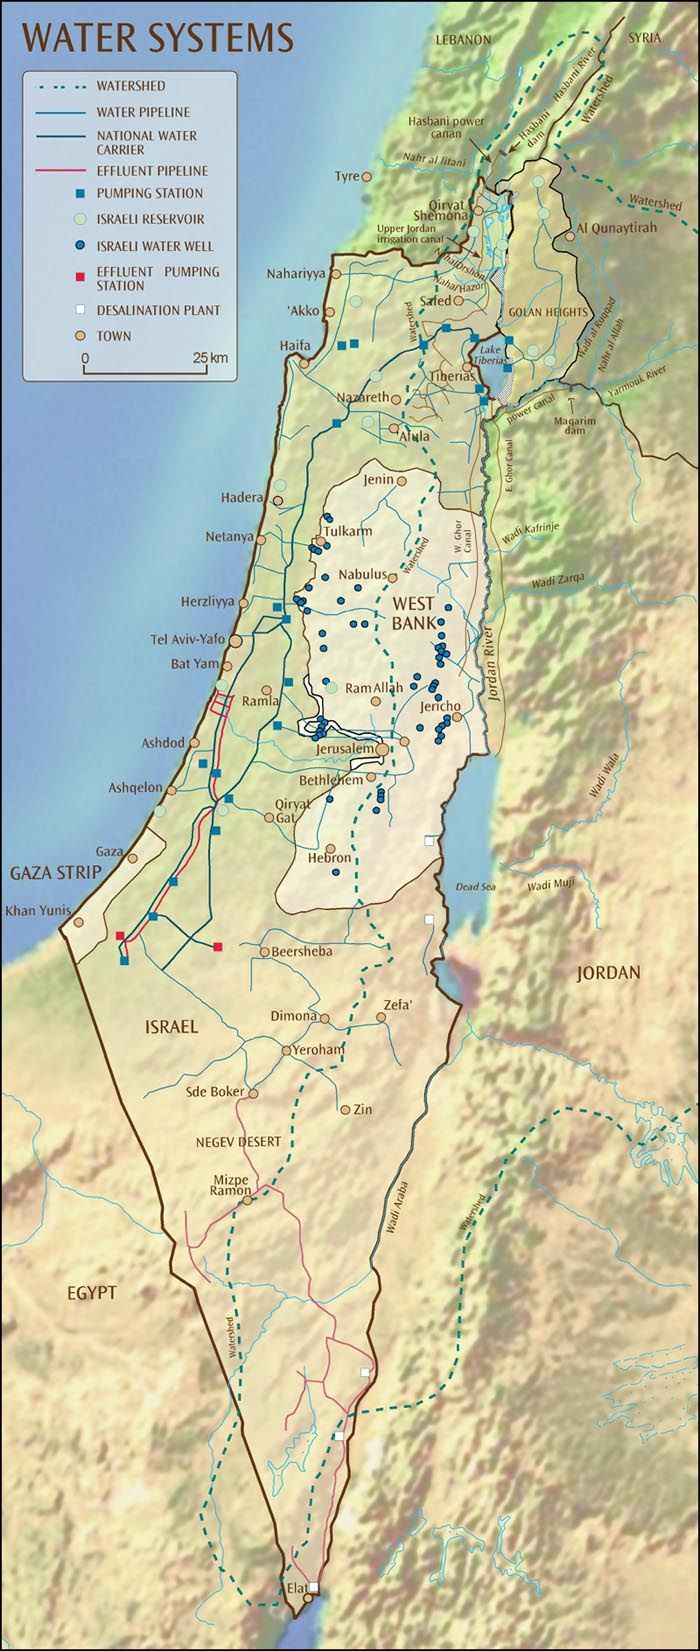 Mapping Israel's Water Systems